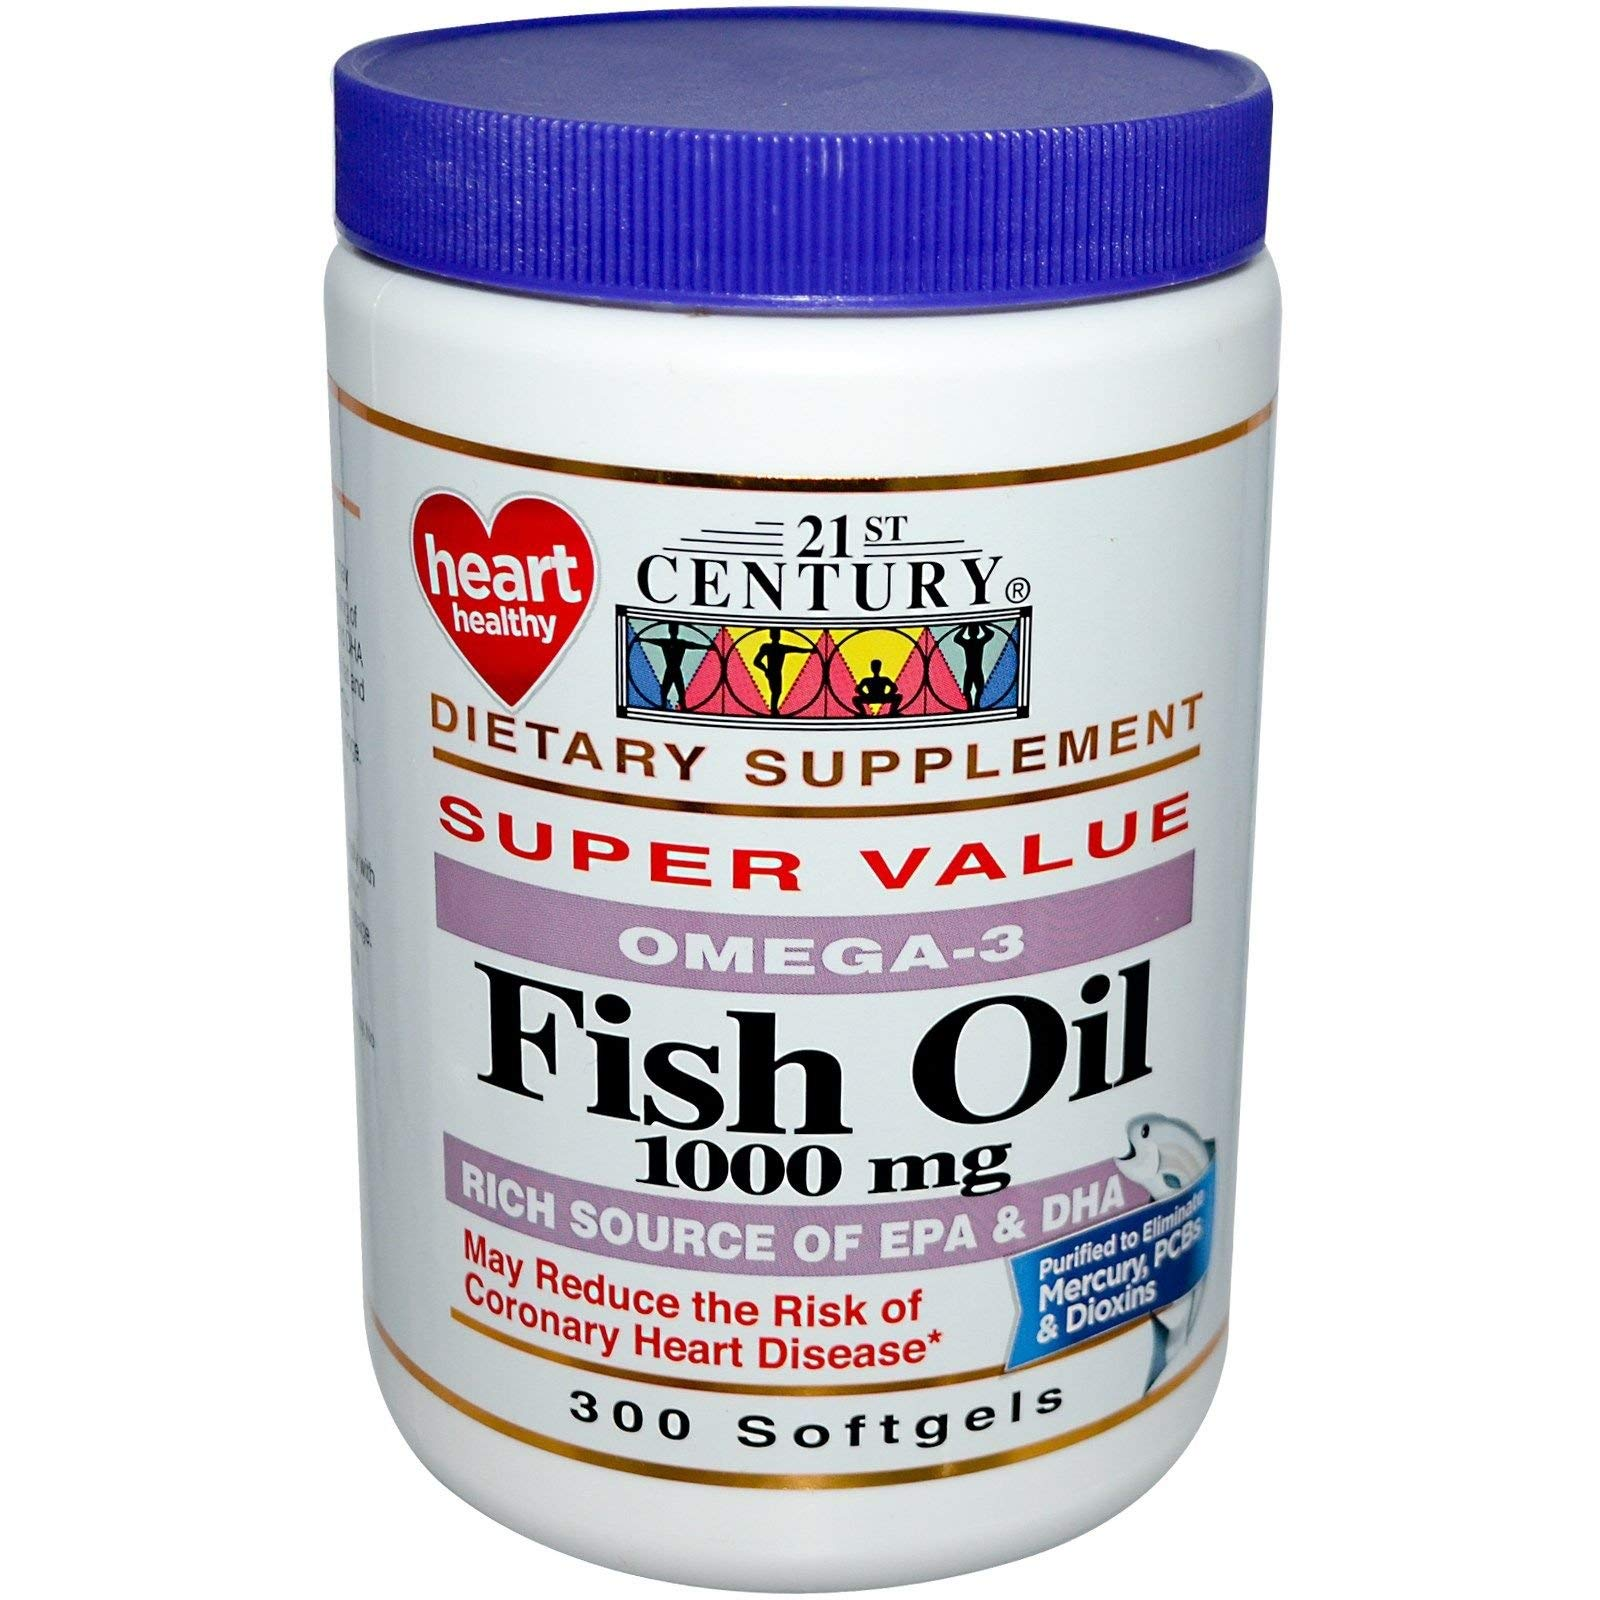 21st Century Omega-3 Fish Oil 1000 mg Softgels 300 ea (Pack of 12)